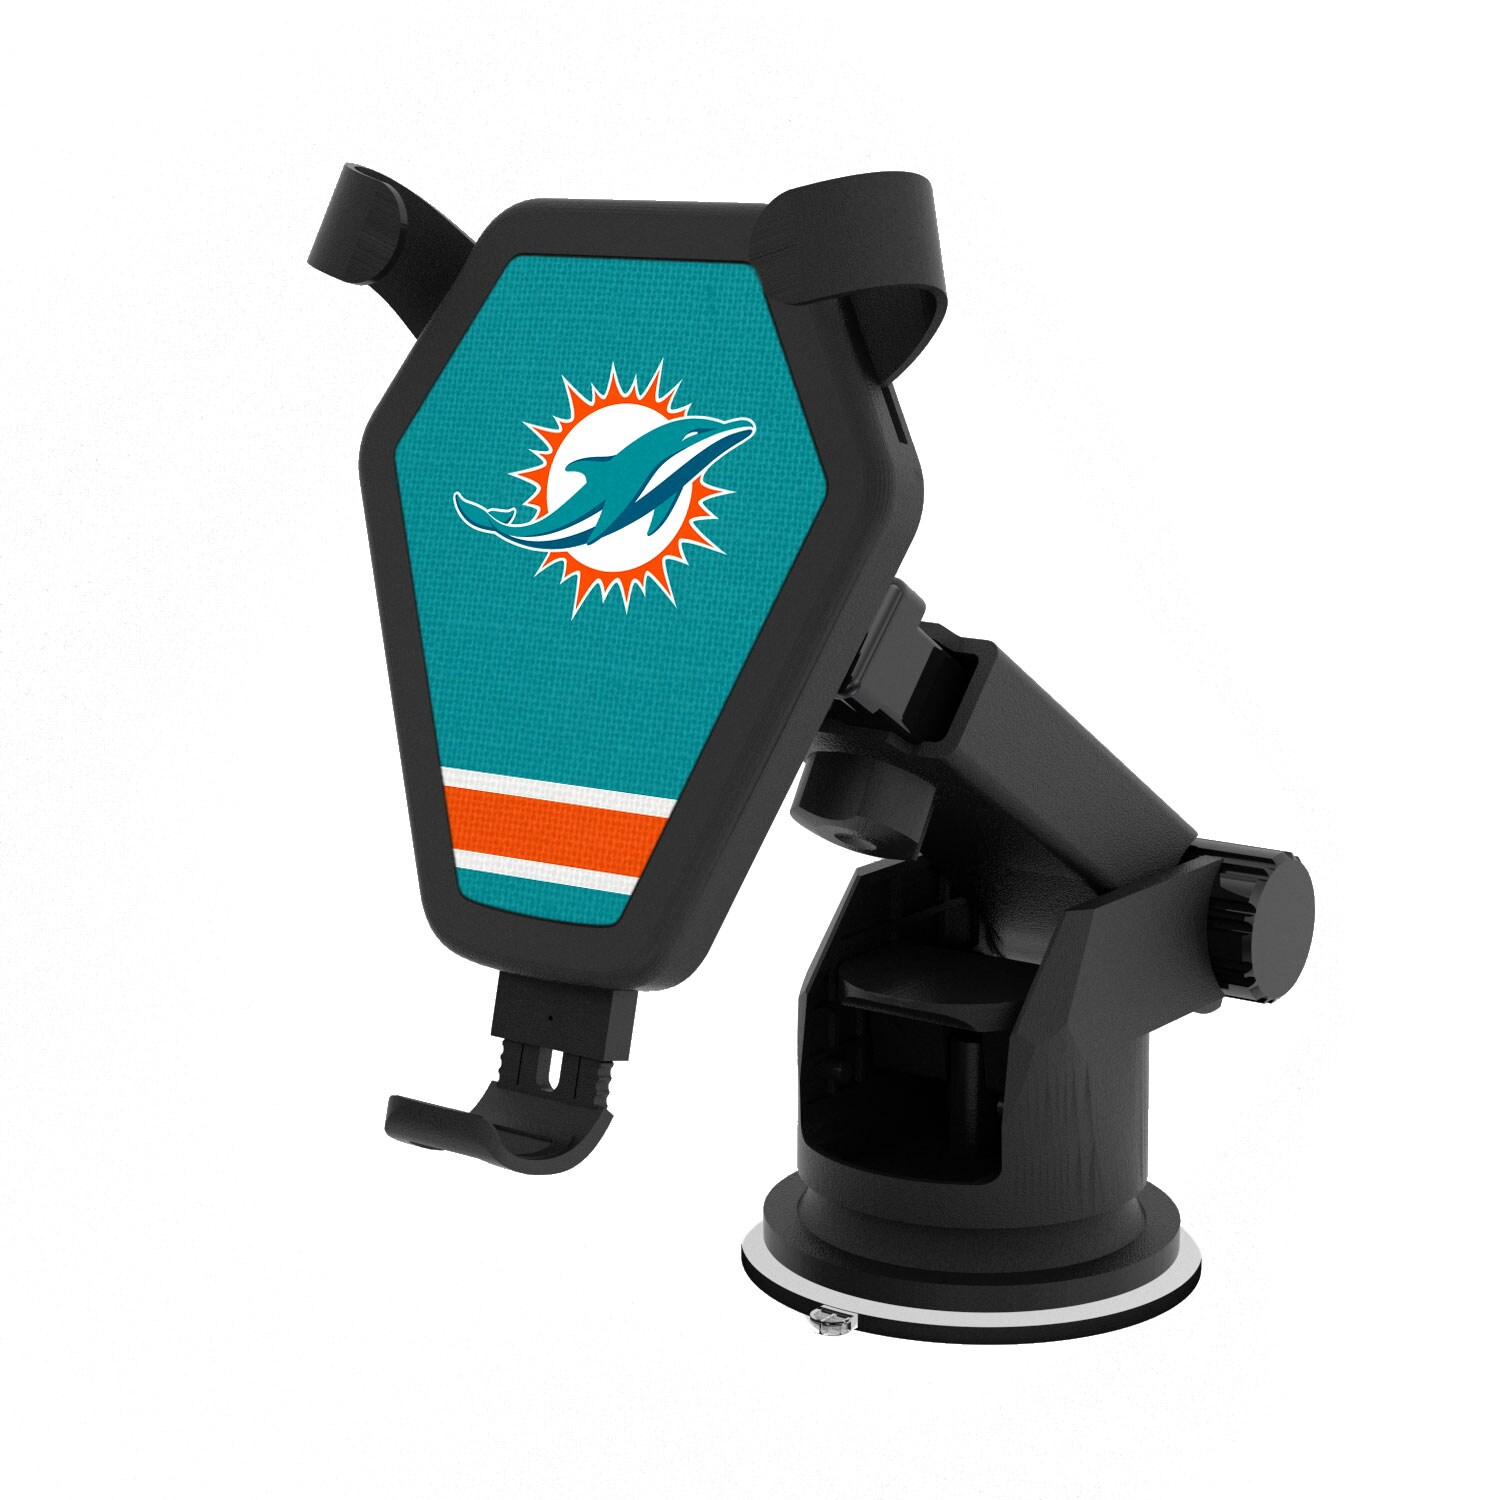 Miami Dolphins Stripe Design Wireless Car Charger